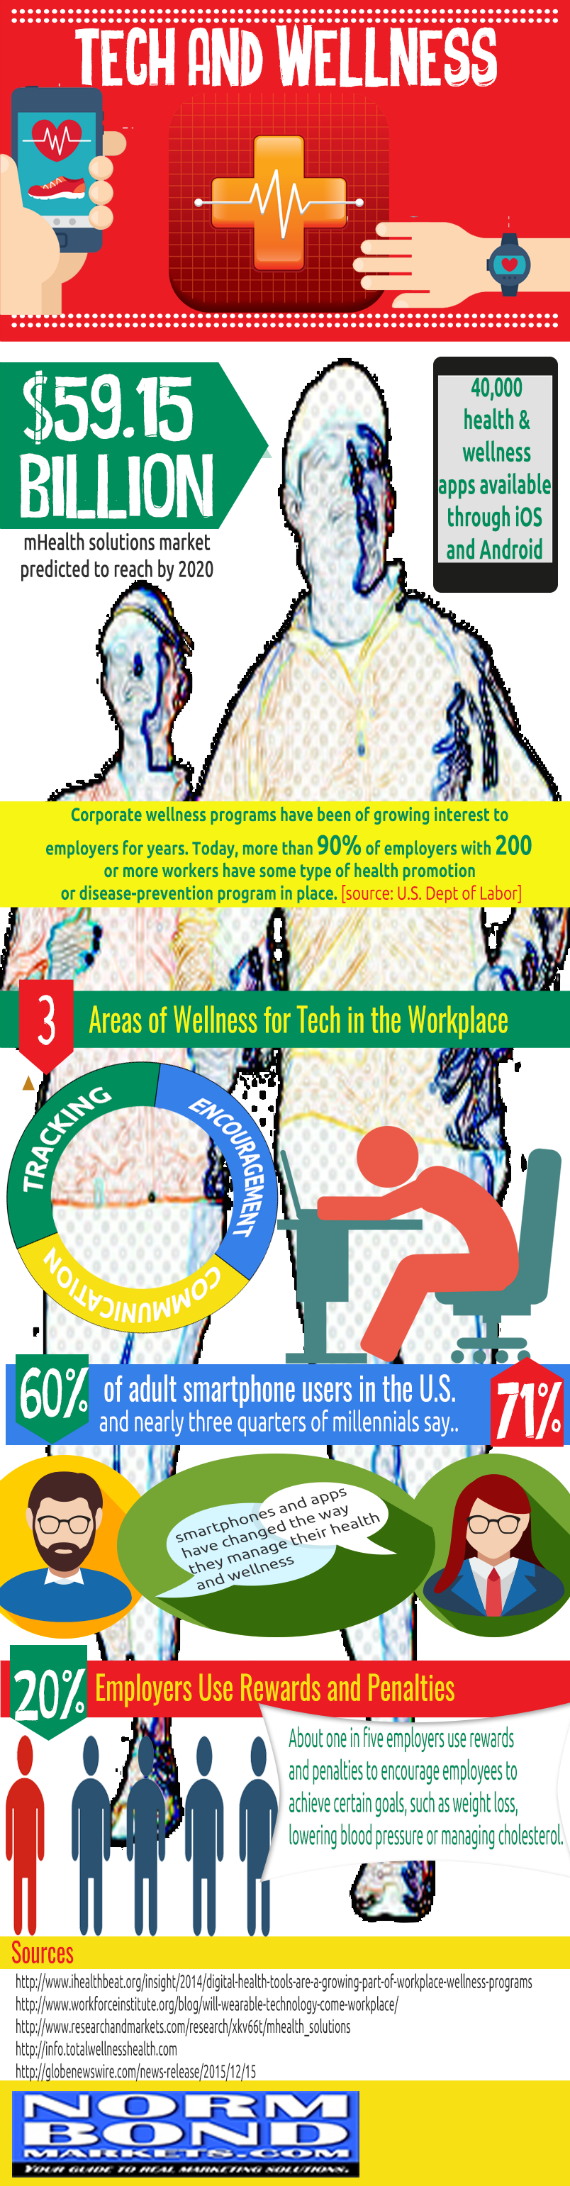 2016-01-12-1452637108-4251212-IntersectionTechandWellnessInfographic_smaller.png